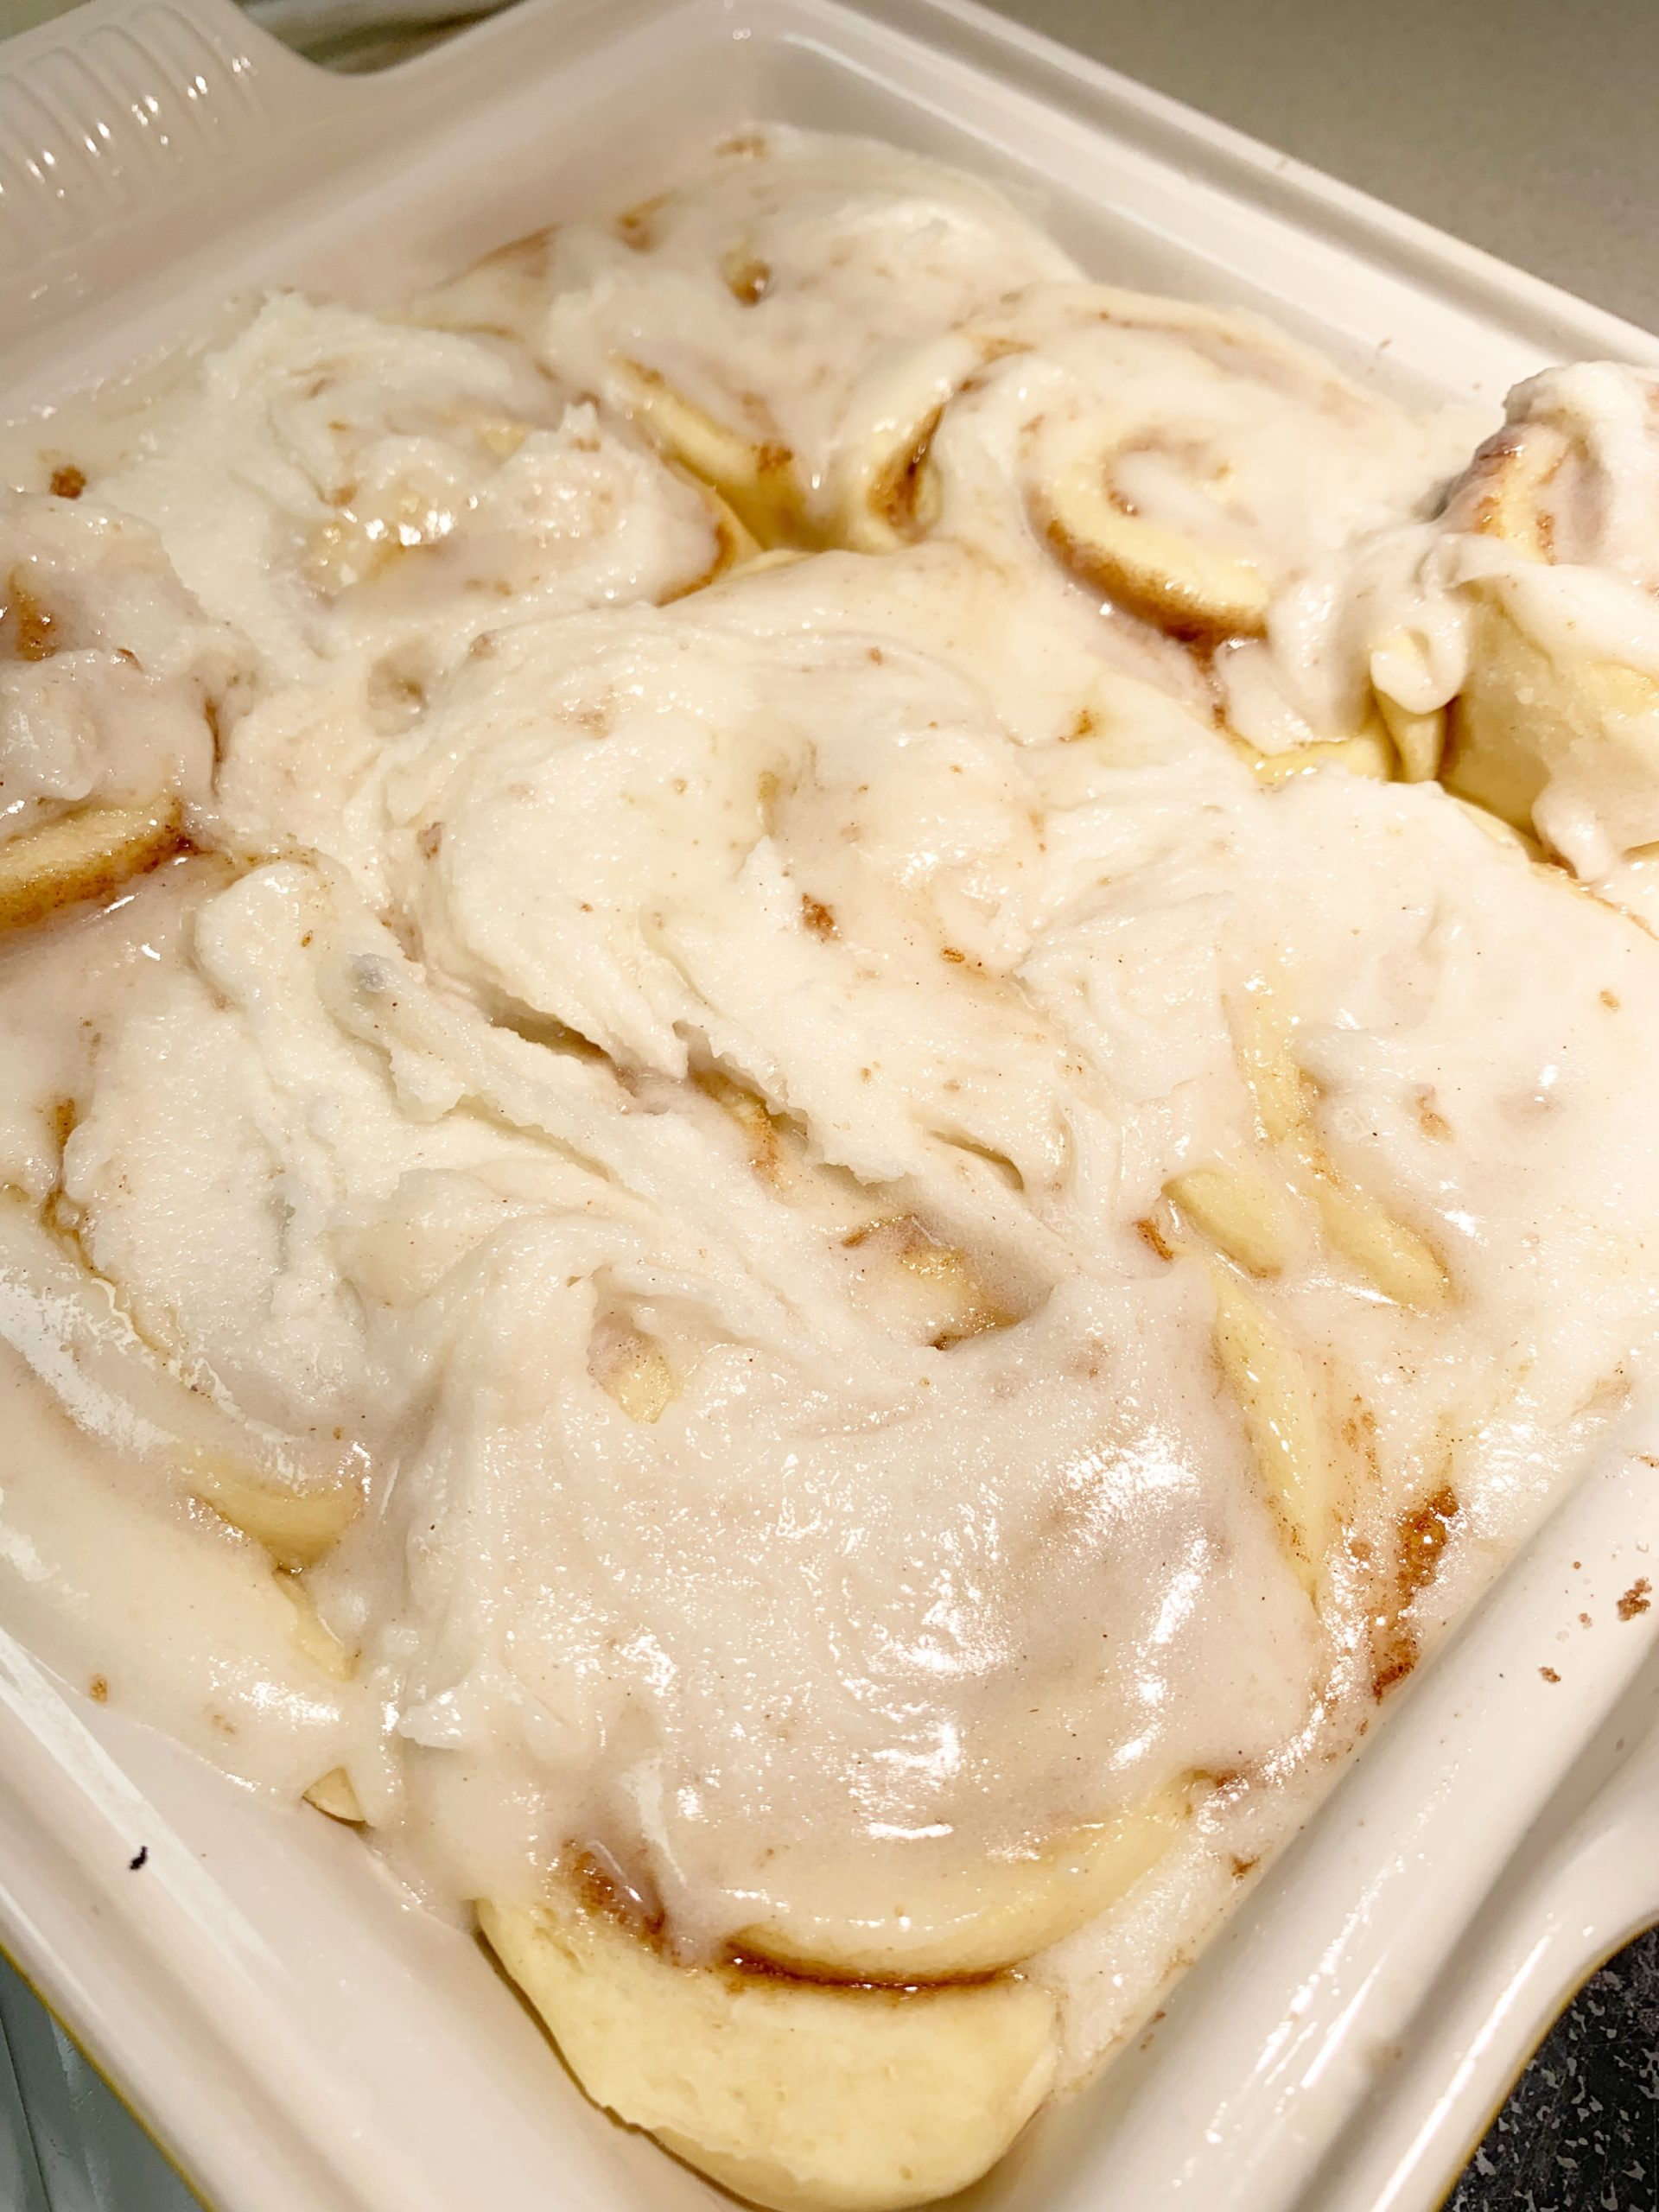 Sourdough Cinnamon Rolls with icing